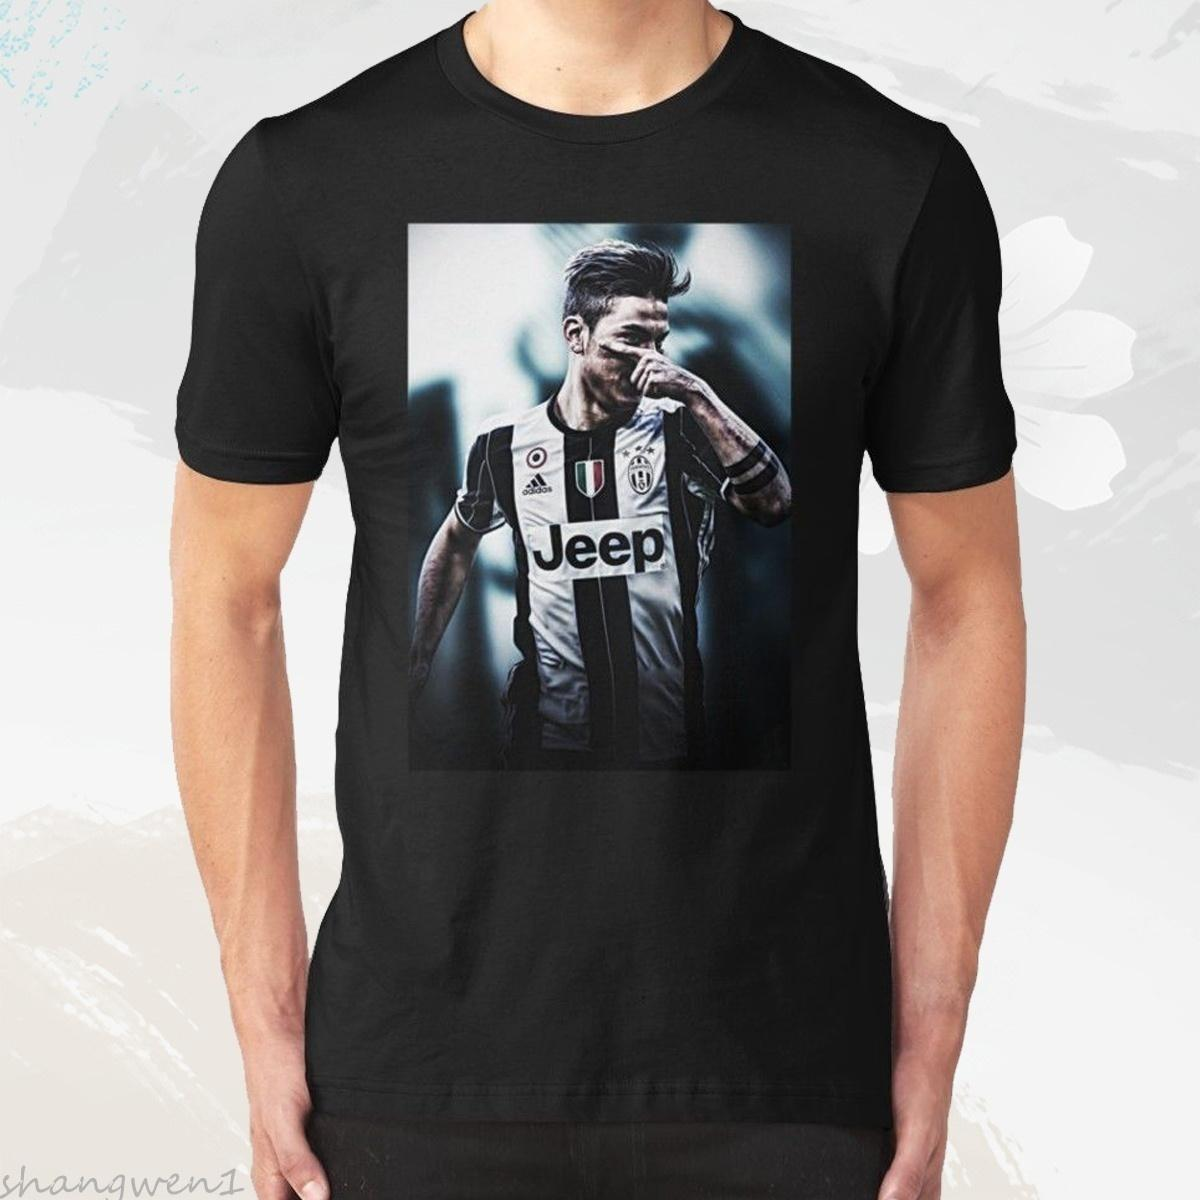 e0f674a60 Juventus Football Club S.P.A Paulo Dybala Tee Shirt Men s Round Neck Short  Sleeves Cotton T-